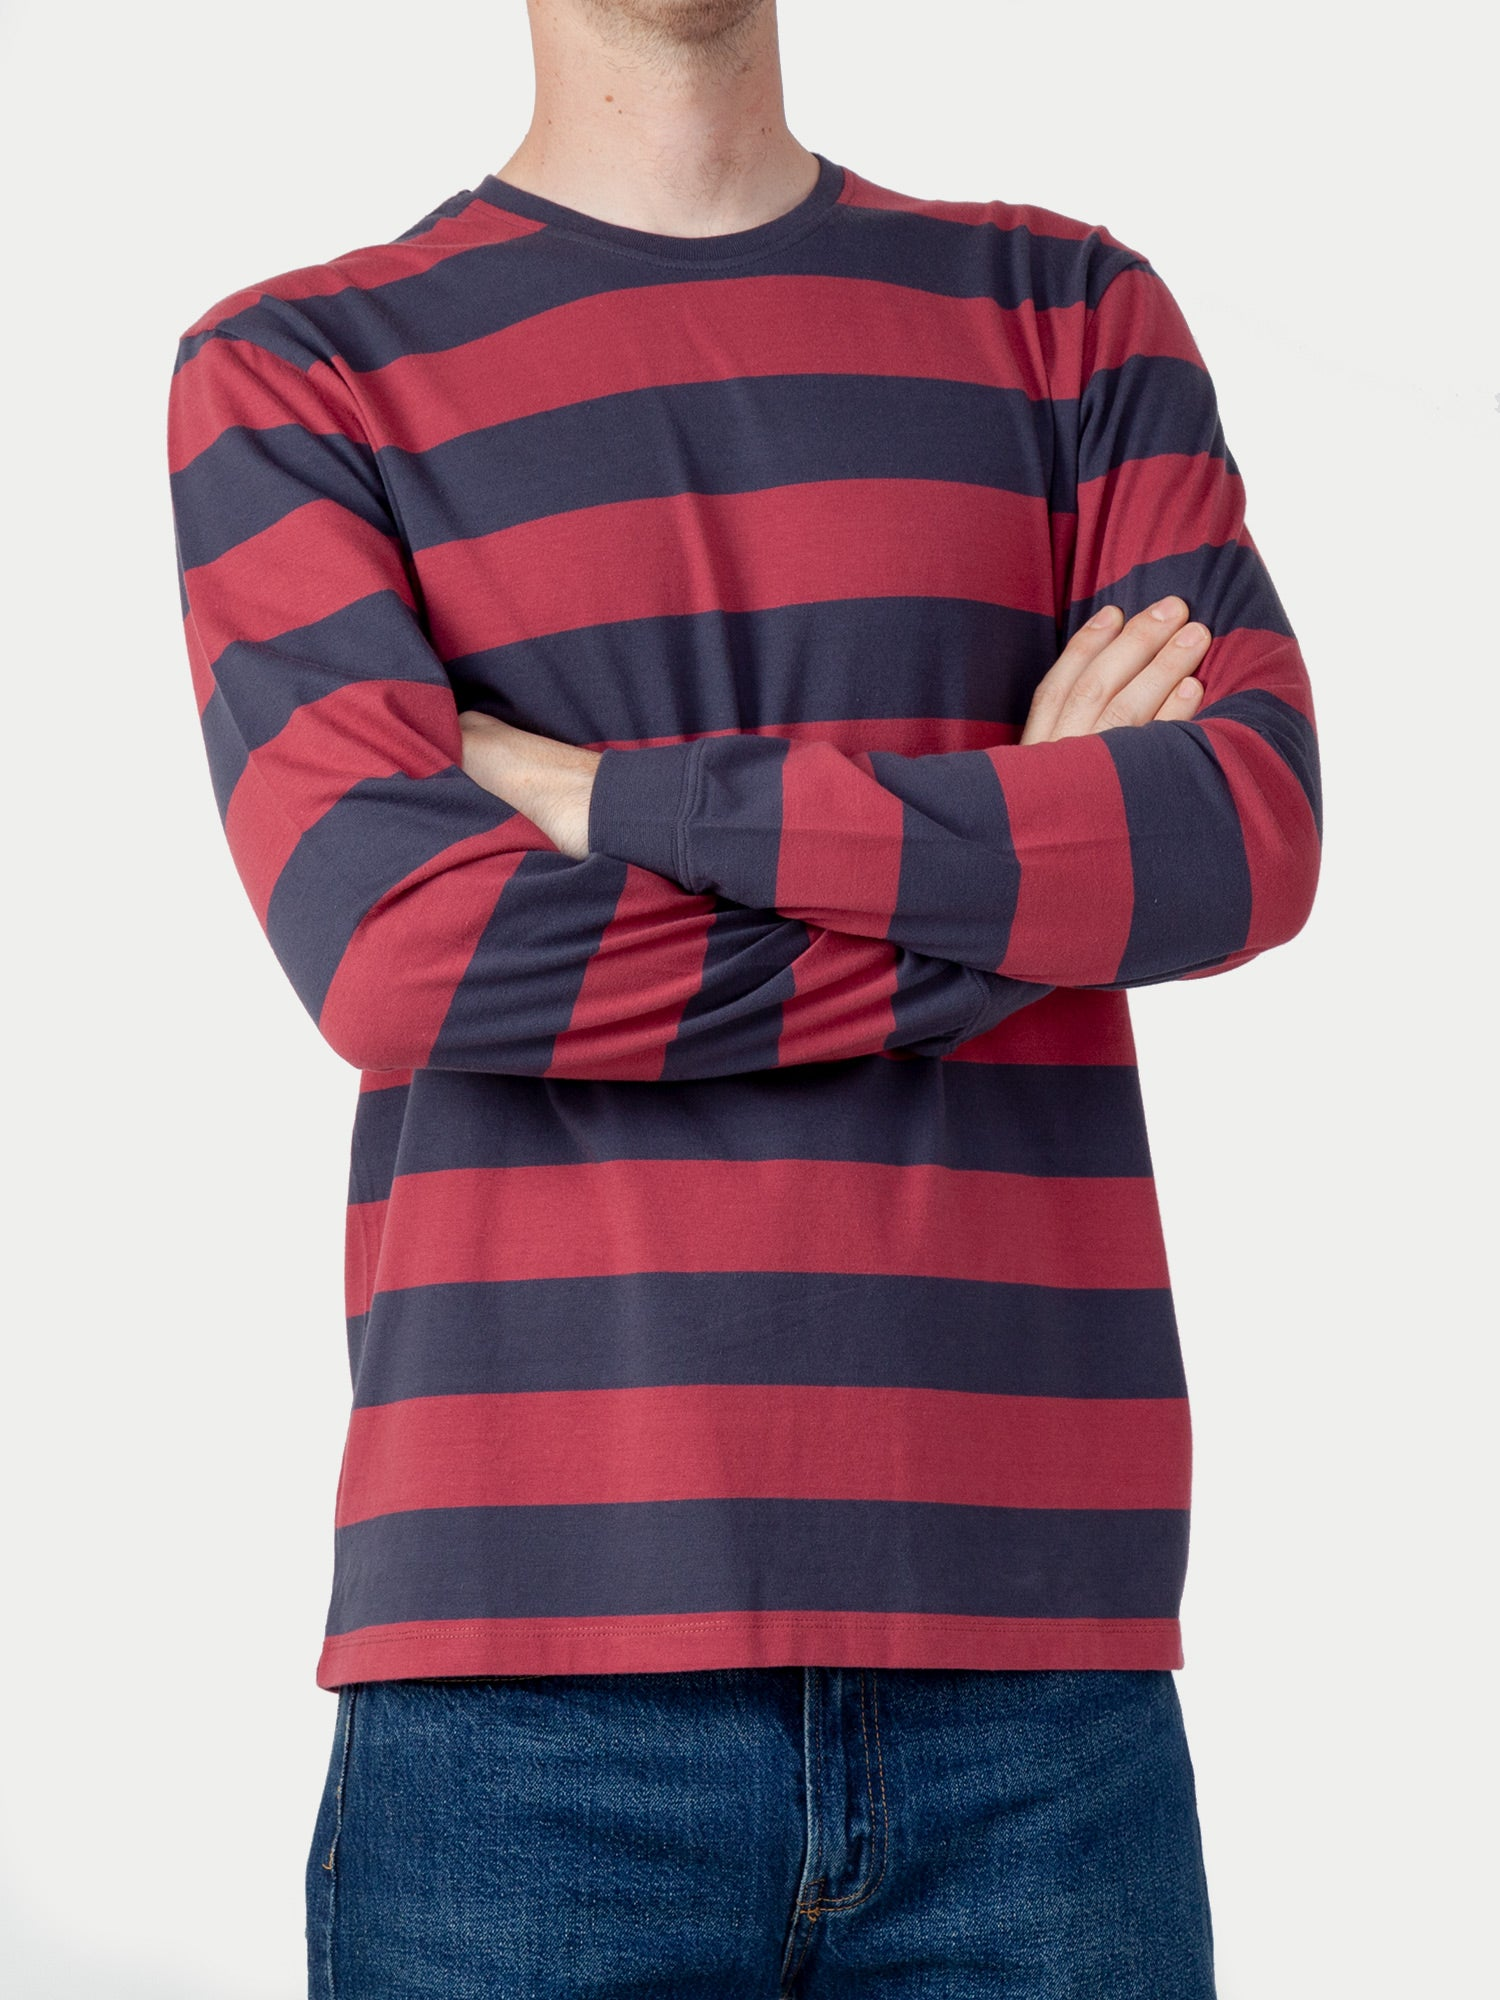 Edwin Beely L/S T-Shirt (Ebony & Ruby Wine Stripes) 1